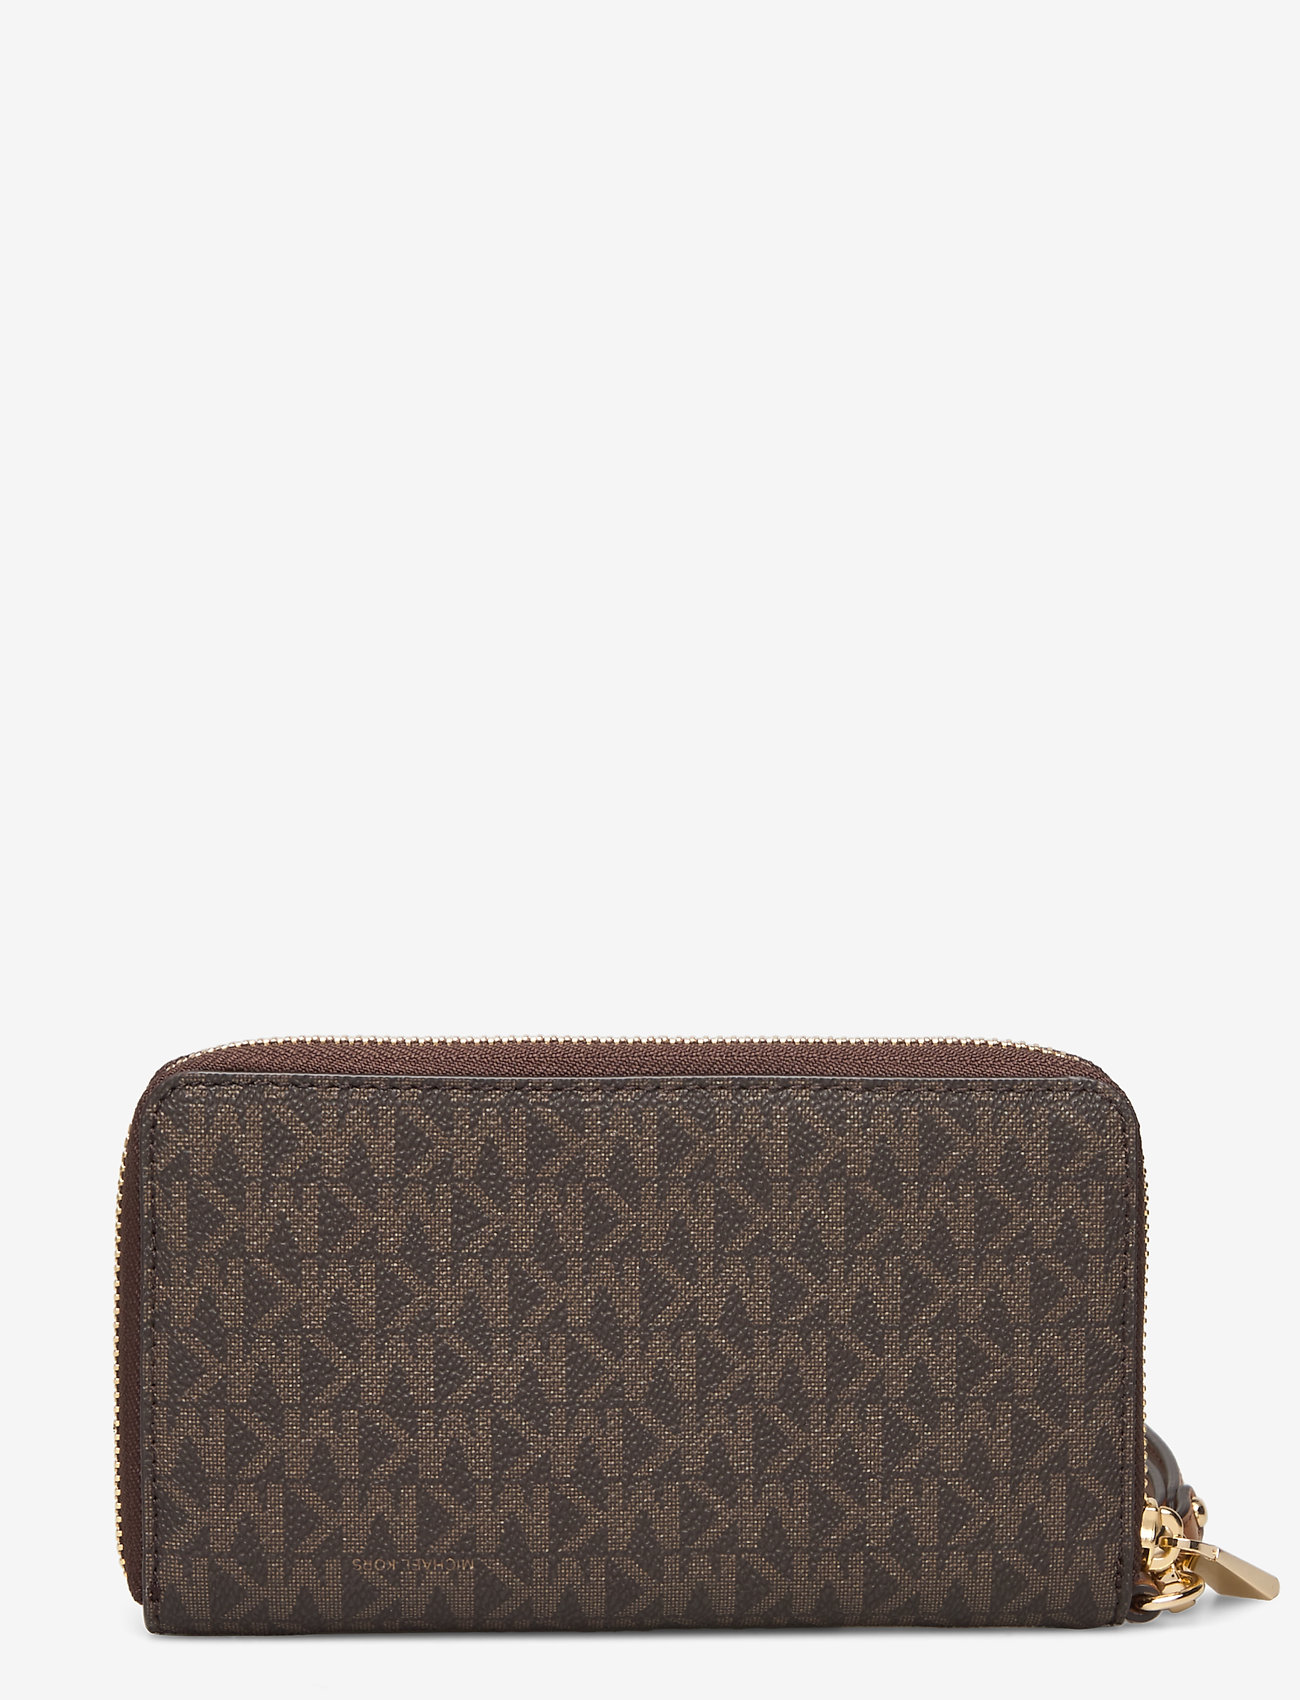 Lg Flat Mf Phn Case (Brown) - Michael Kors Bags 7WOZun